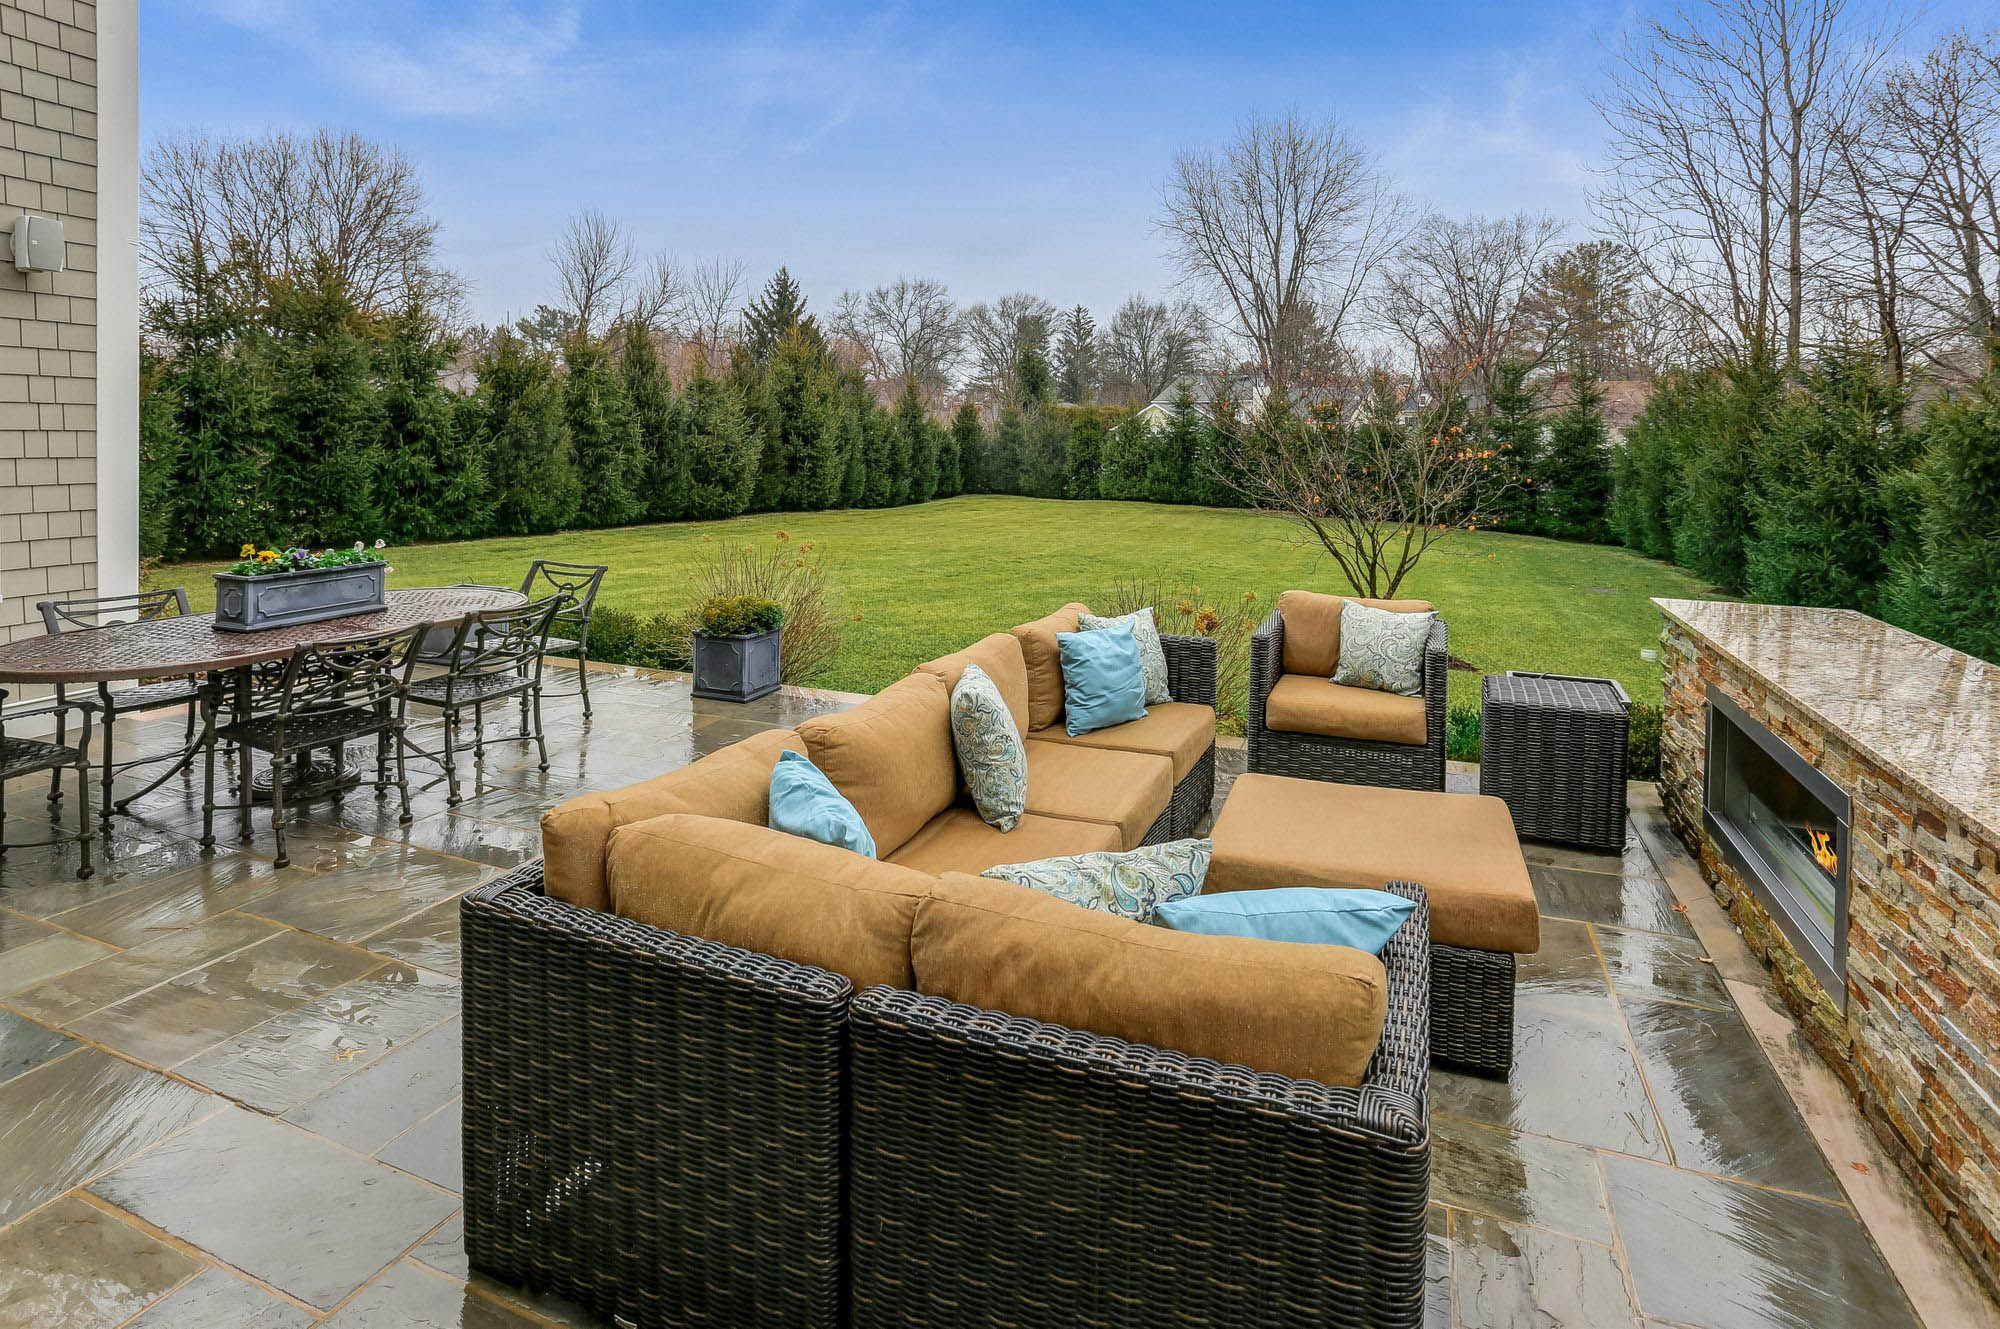 black wicker patio furniture set with brown cushions and blue throw pillows.